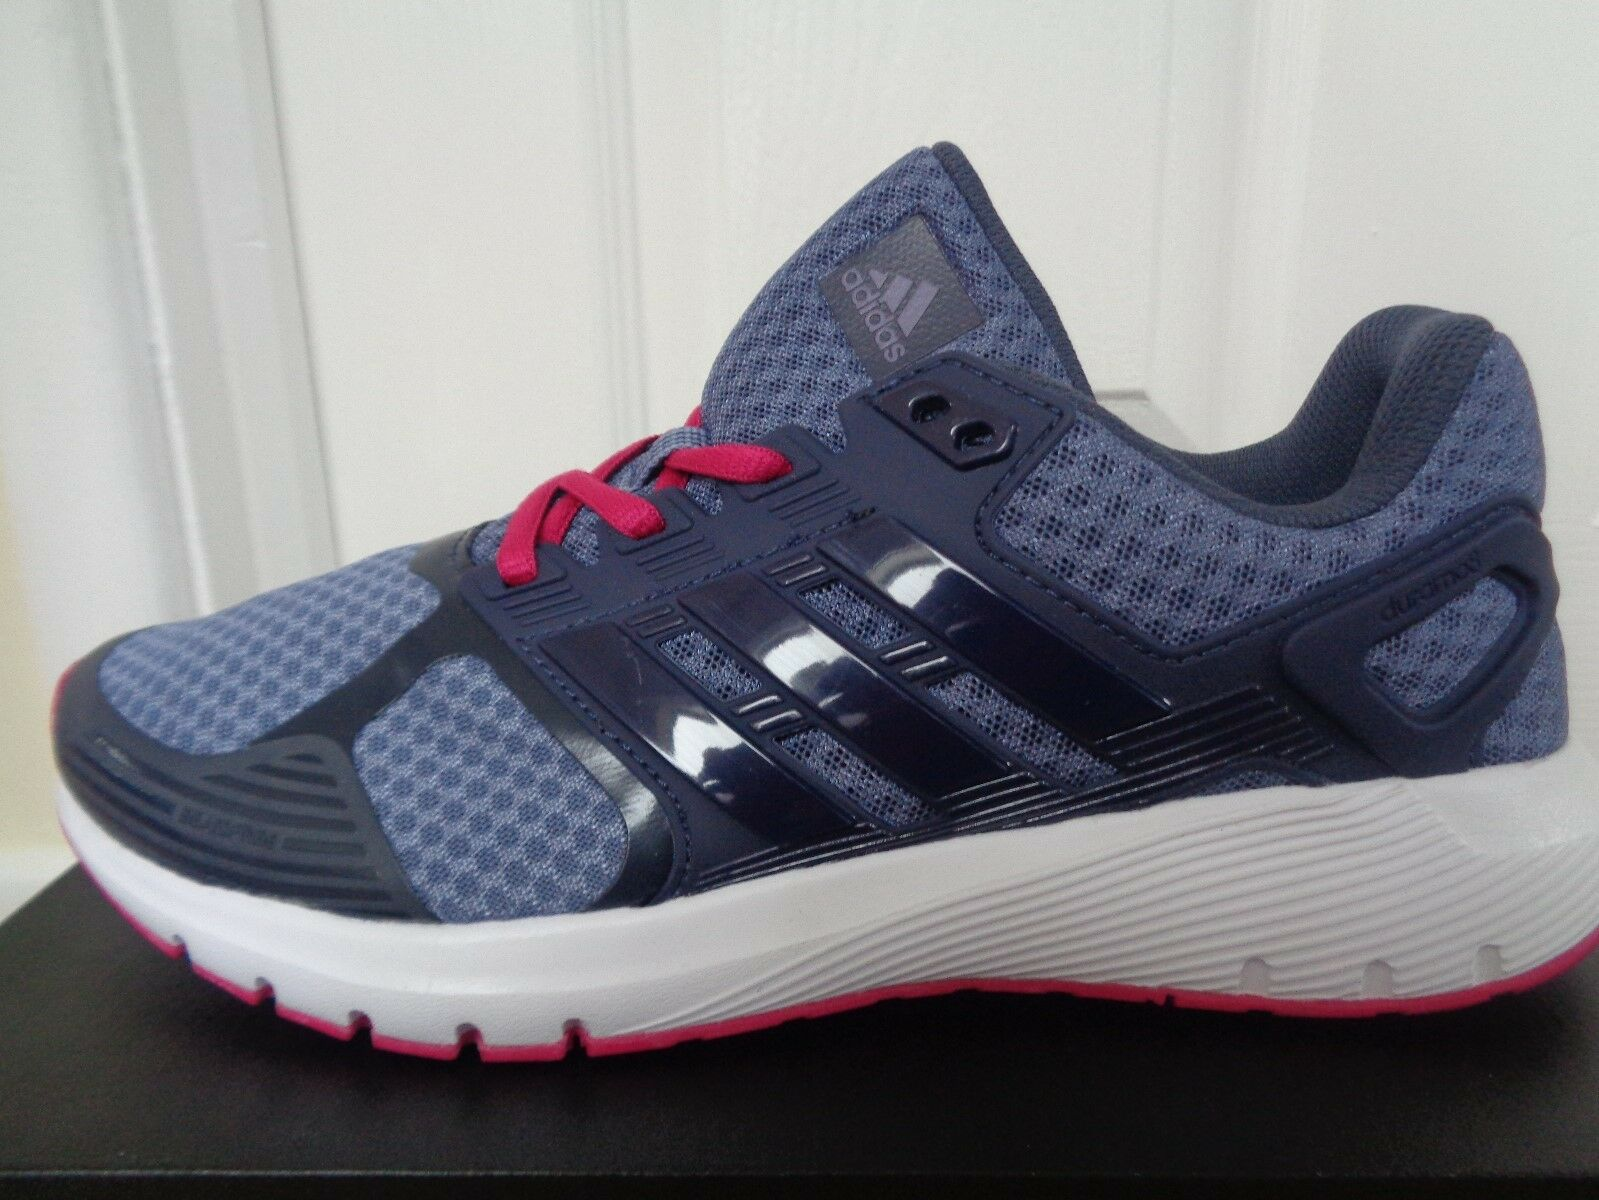 Adidas sneakers Duramo 8 womens trainers sneakers Adidas BB4674 uk 7 eu 40 2/3 us 8.5 NEW+BOX fc0a4f